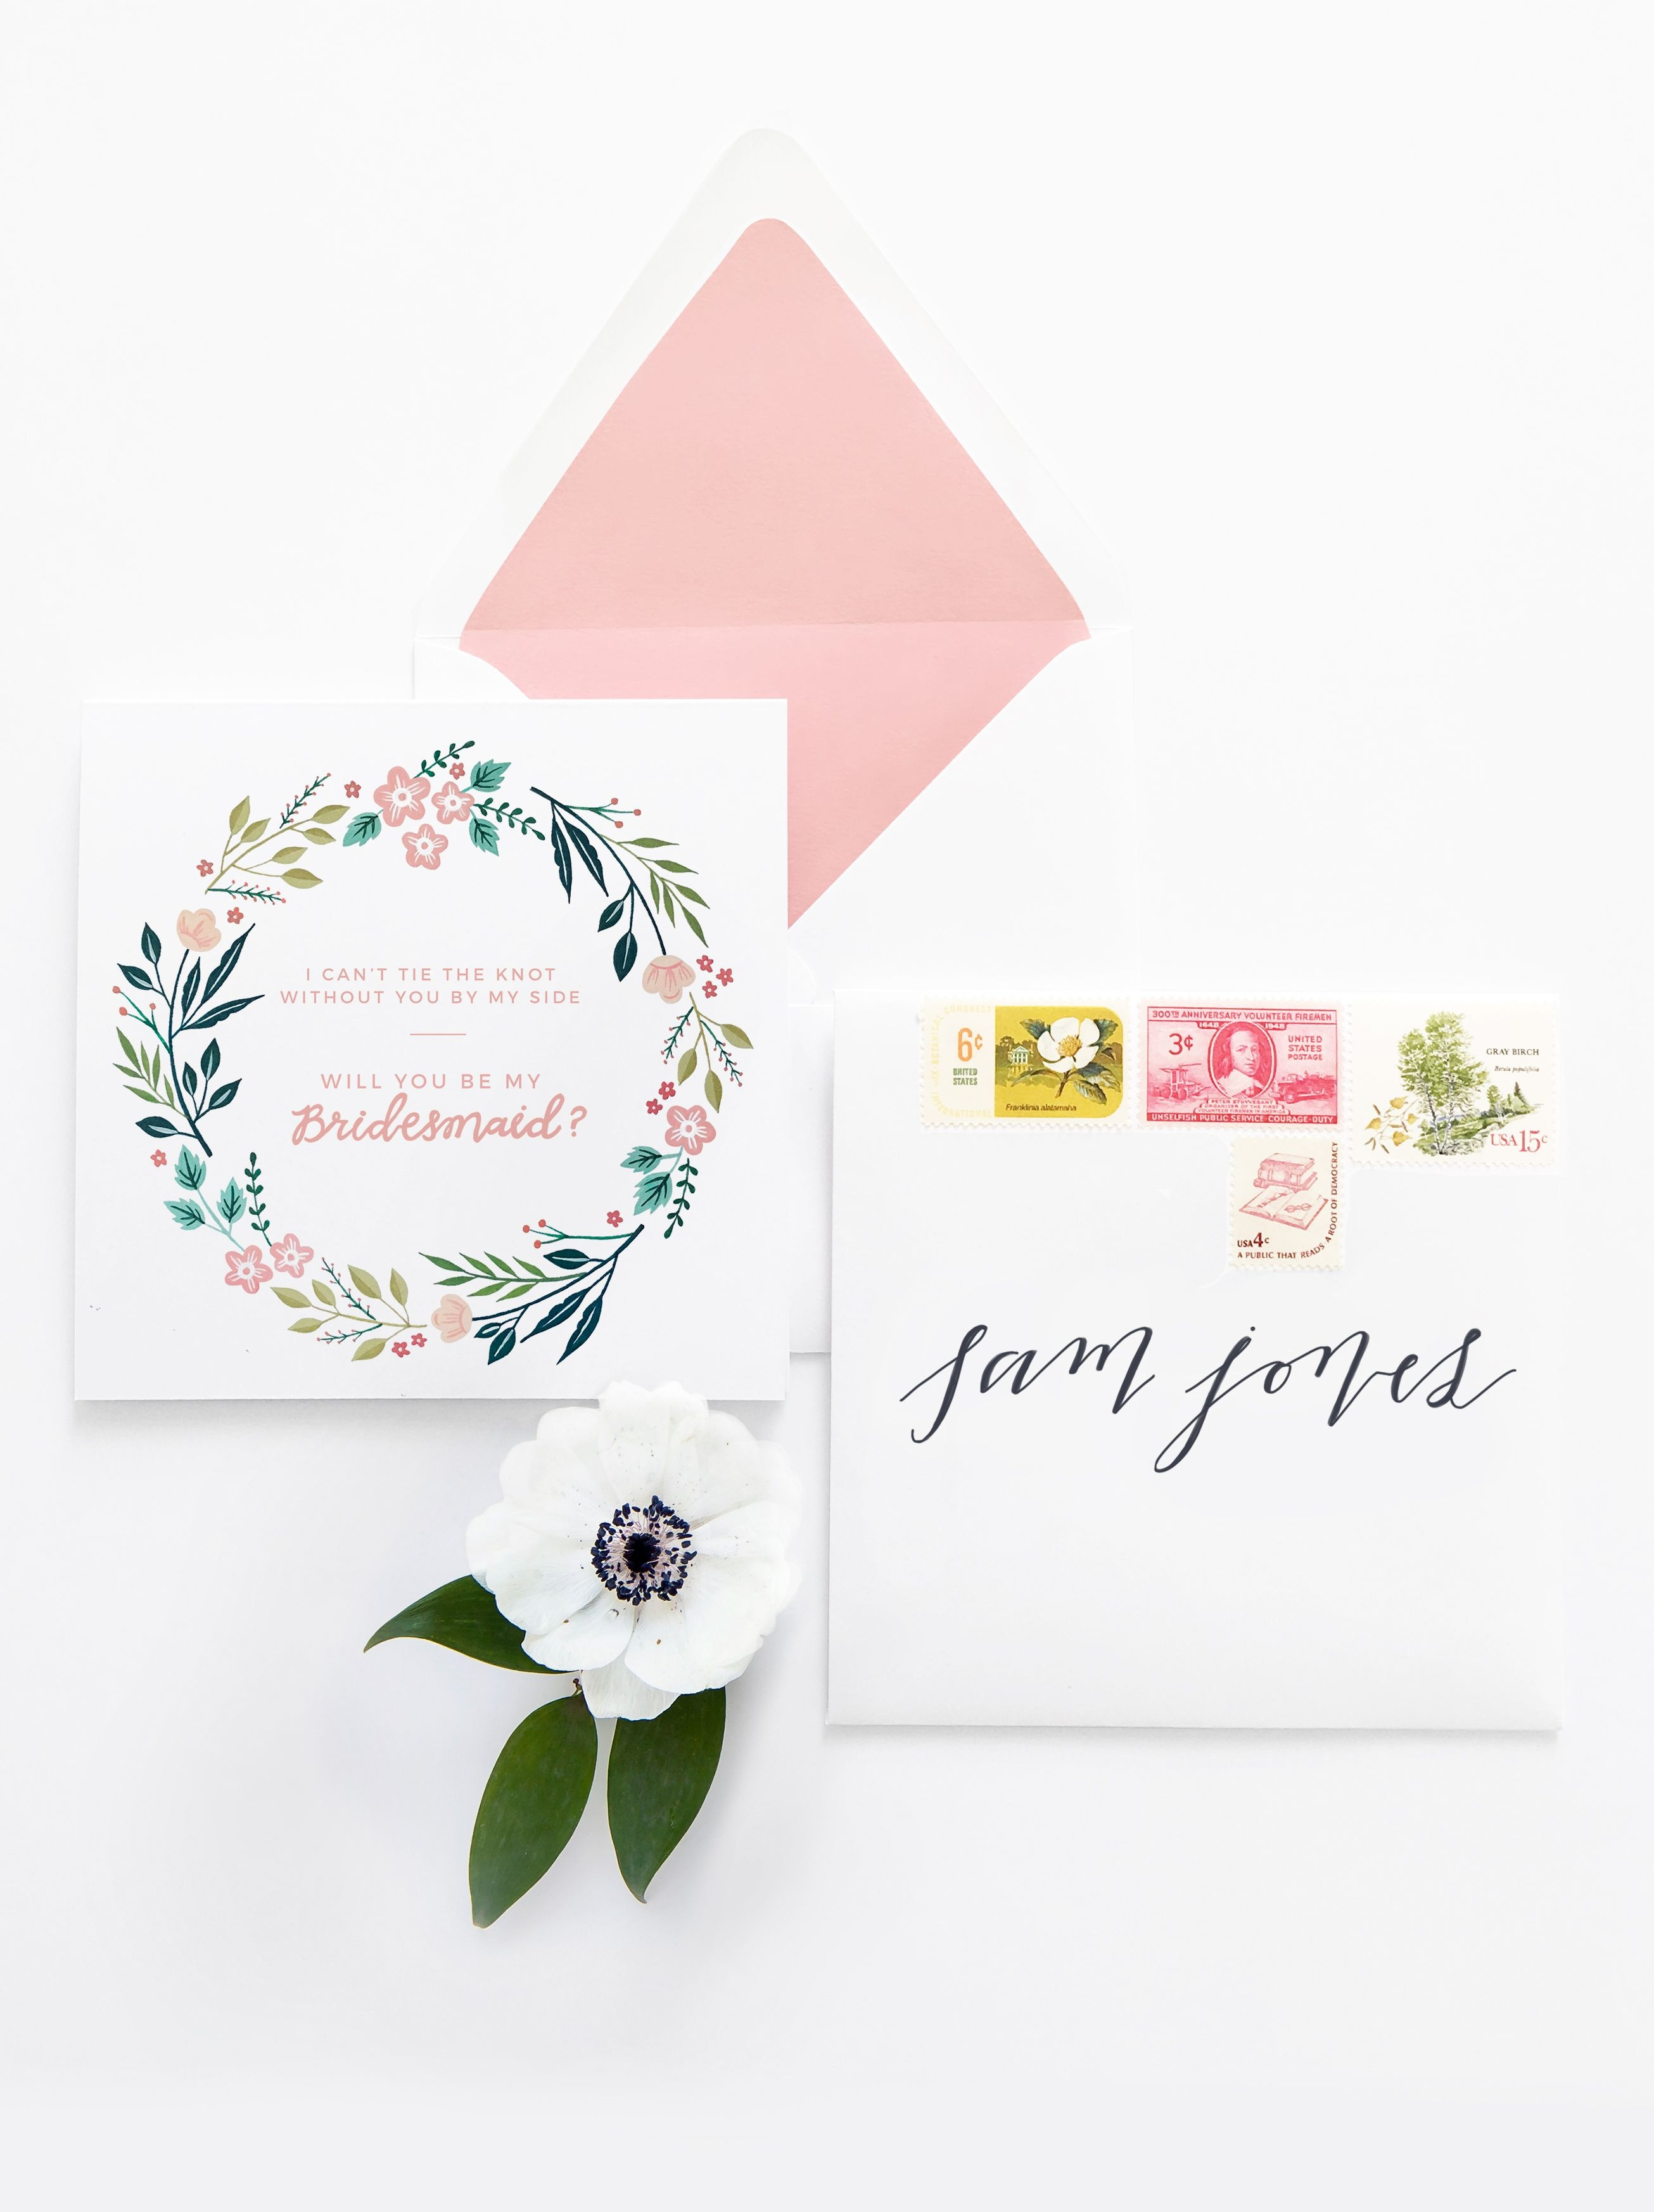 Free Printable - Will You Be My Bridesmaid Card | W E D D I N G - Will You Be My Bridesmaid Free Printable